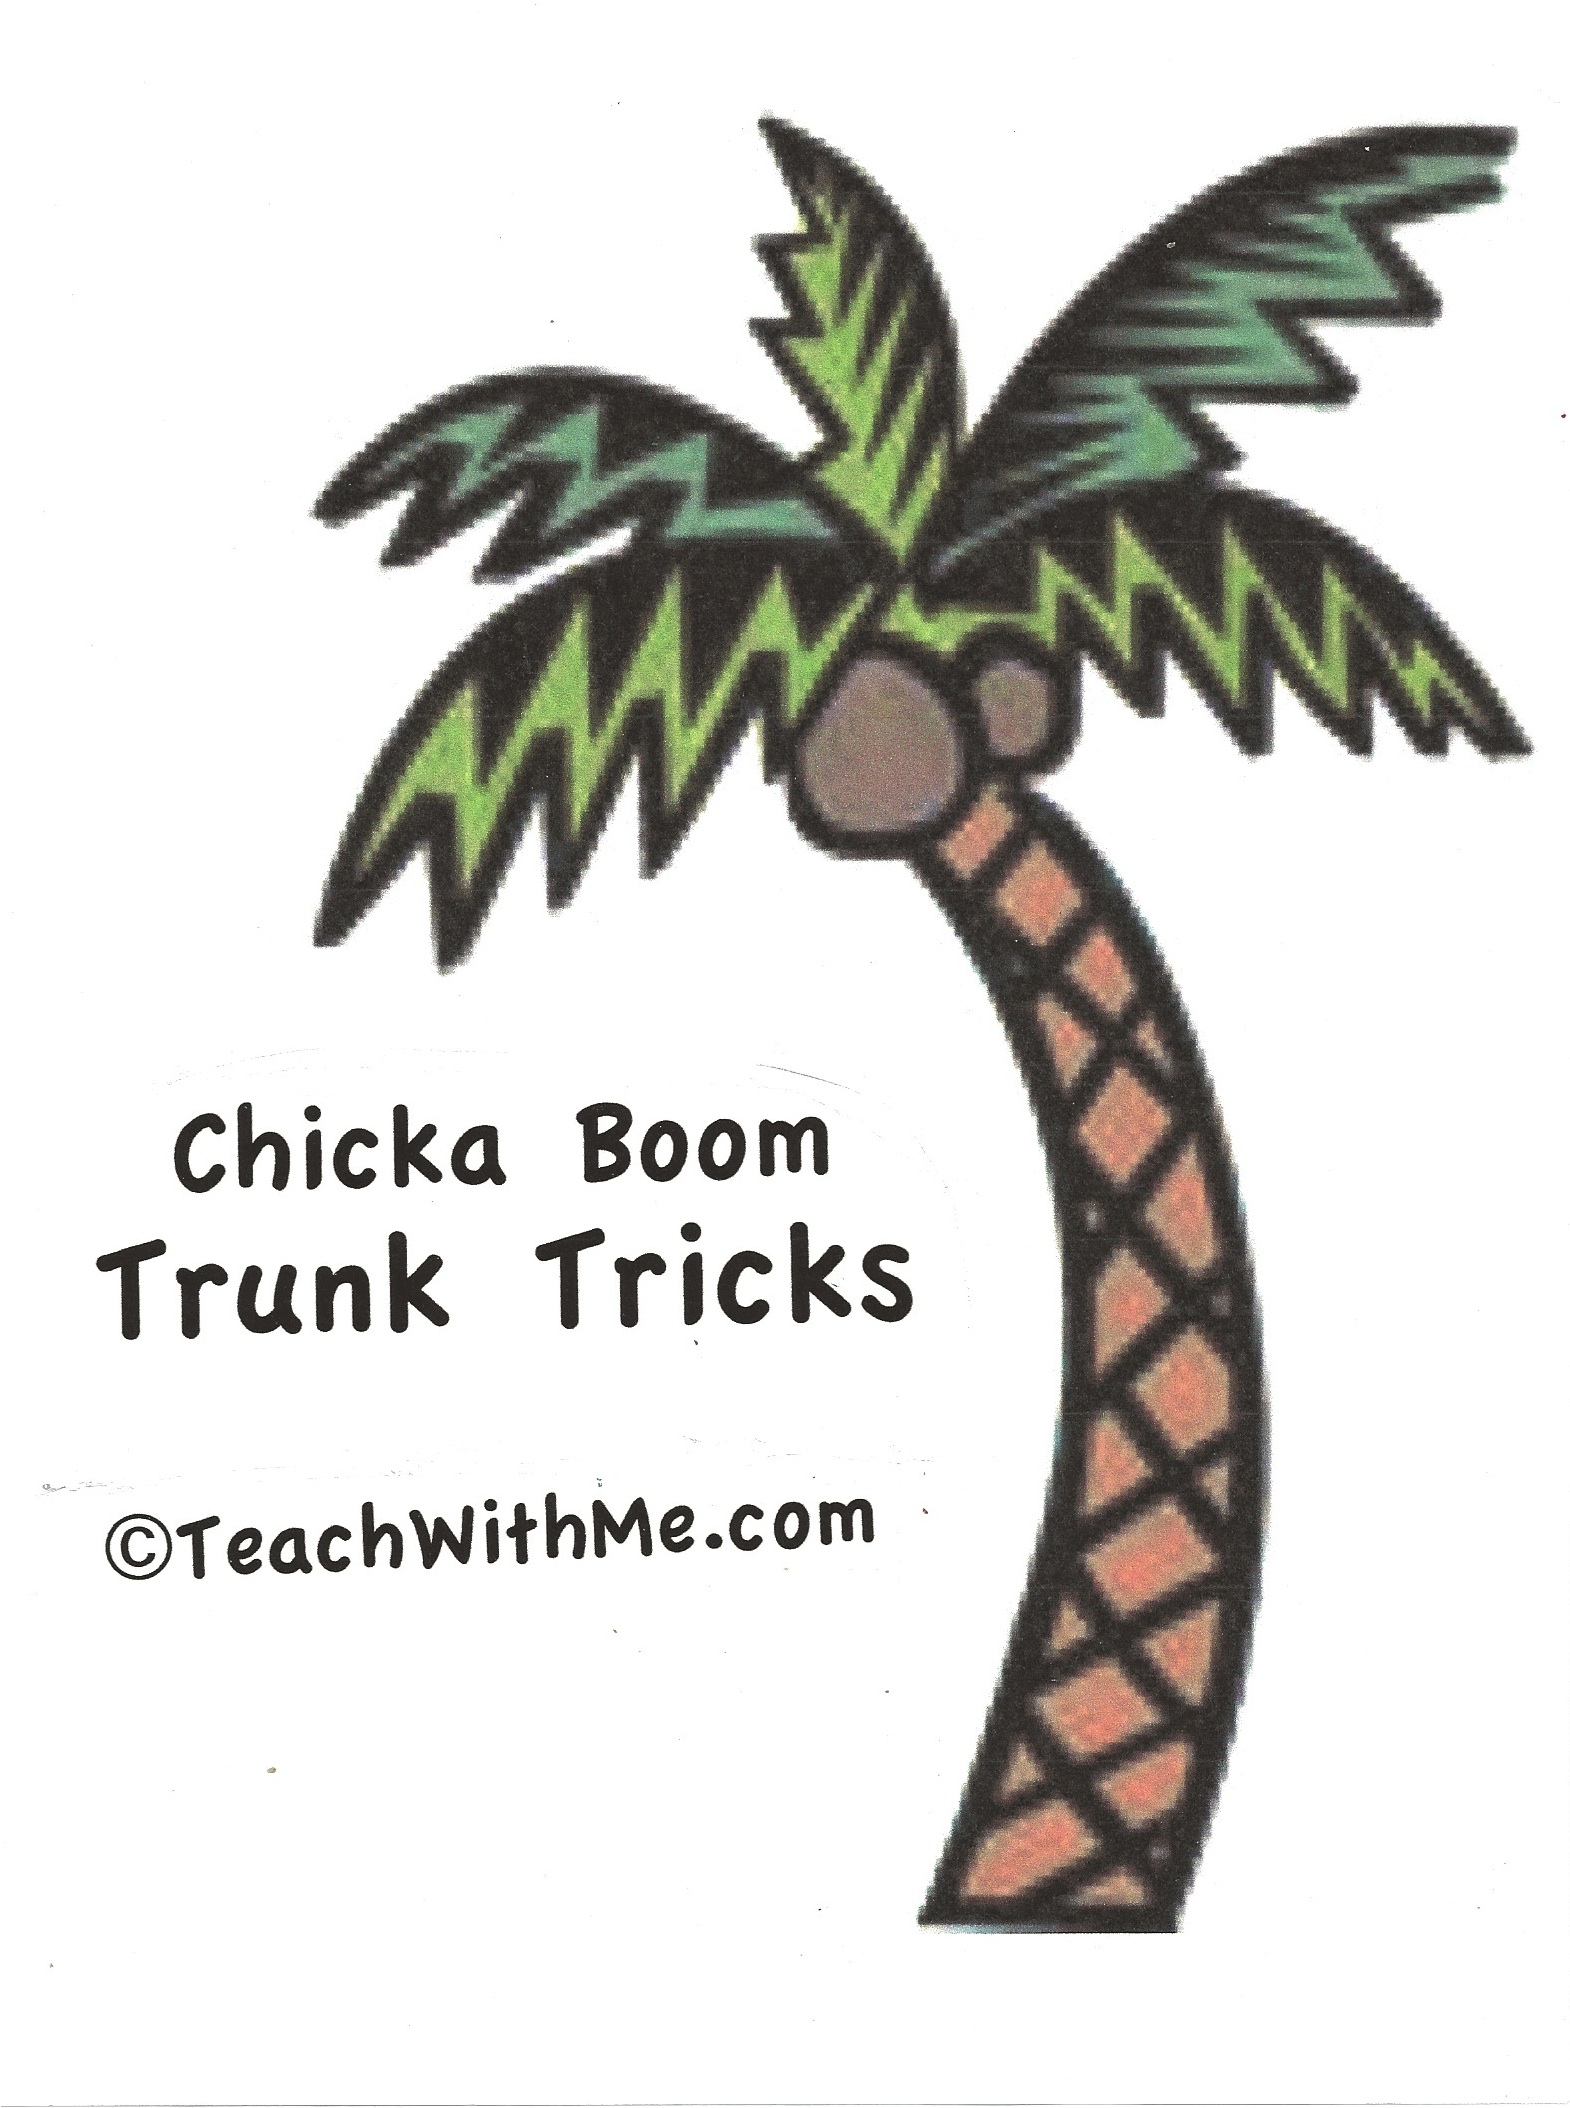 back to school ideas, ideas for the first day of school, chicka boom ideas, apple ideas, chicka boom art, chicka boom activities, apple activities,